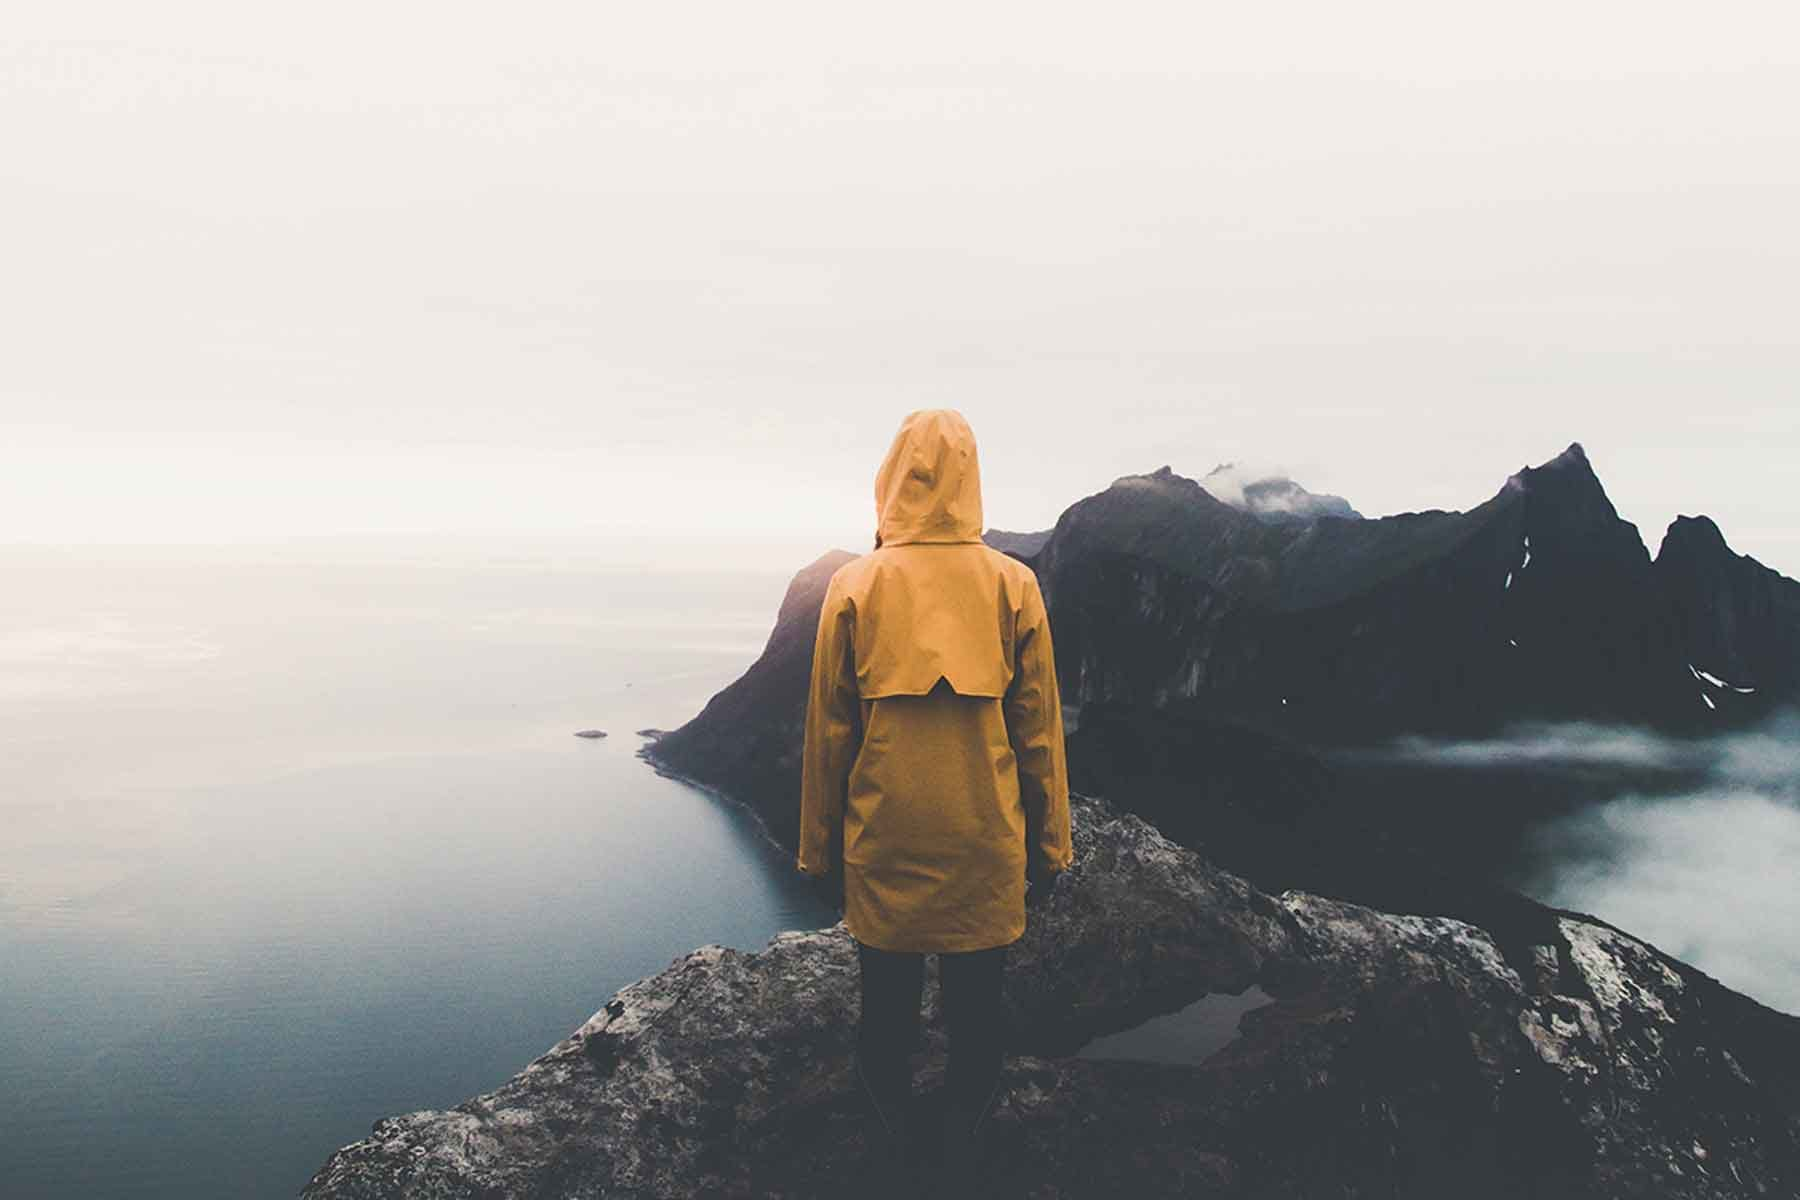 Photo of person  in yellow raincoat standing on cliff by ocean